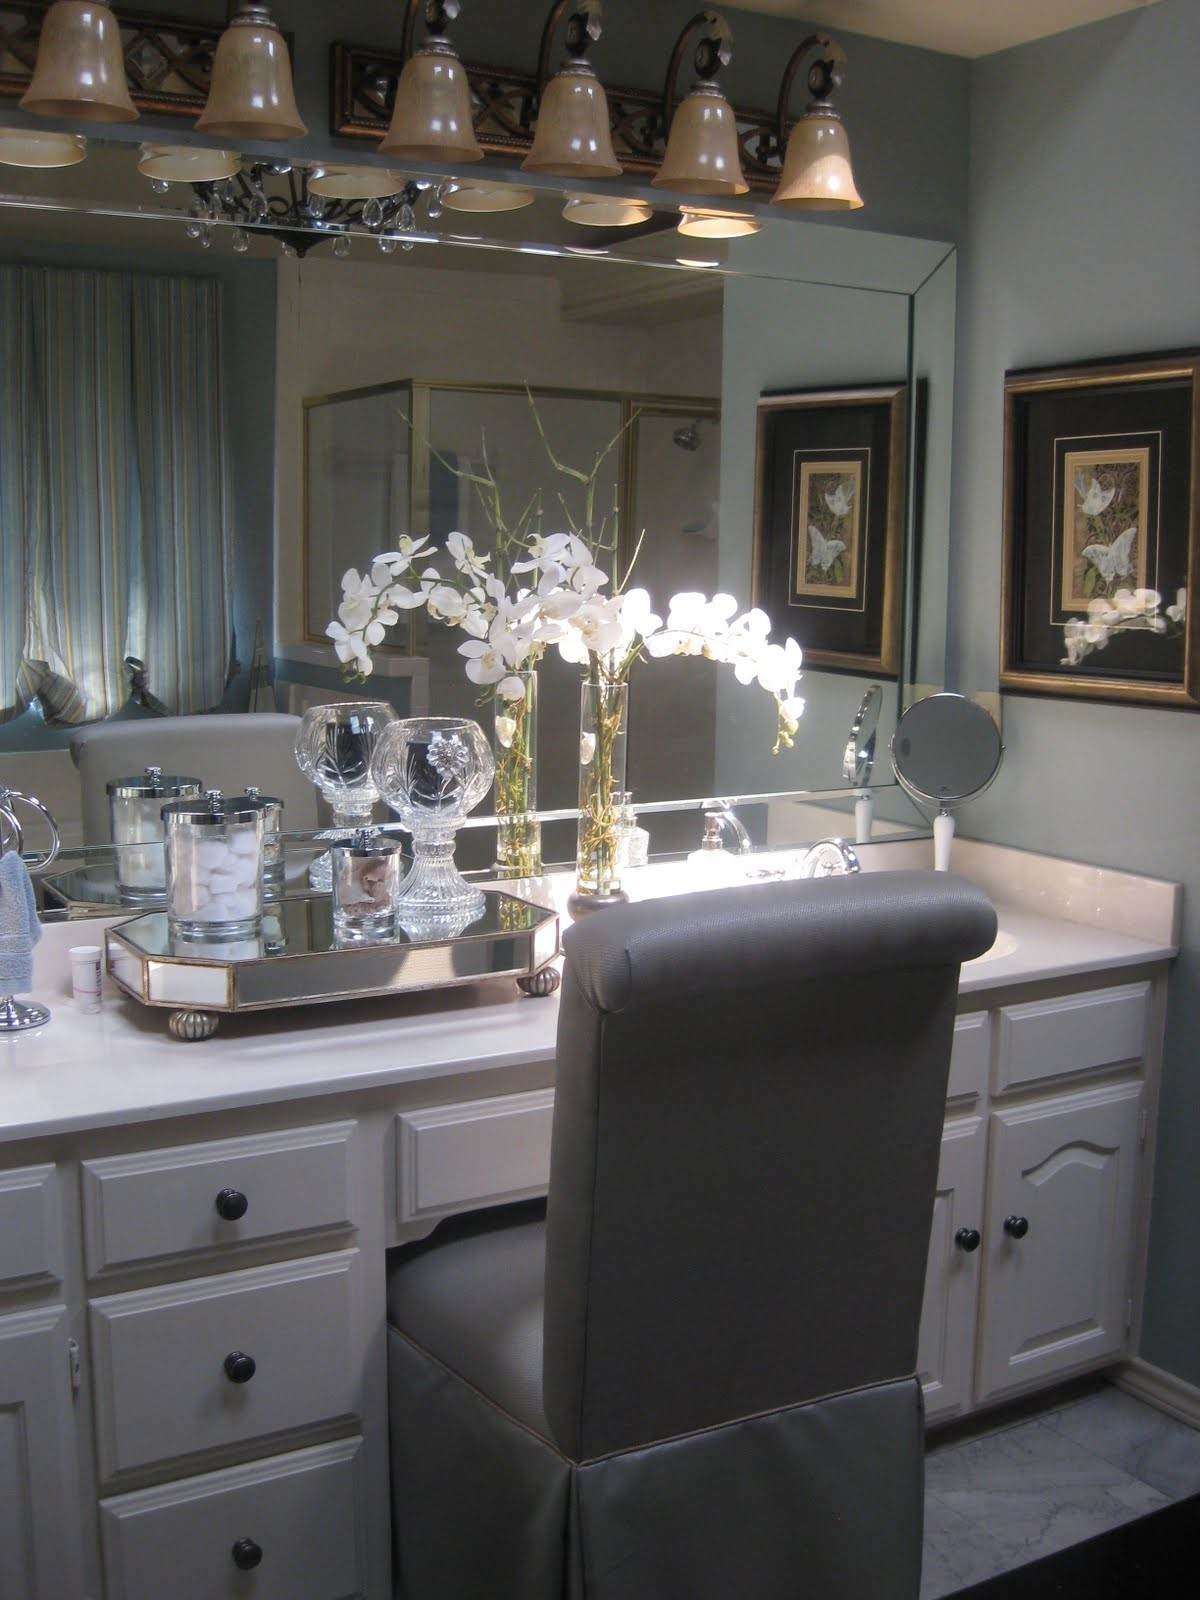 Modern High Back Vanity Chair Dressed In Gray Vinyl Skirted Slipcover  Blends Harmoniously With White Vanity Cabinet. The Entire Wall Is Occupied  By Crystal ...